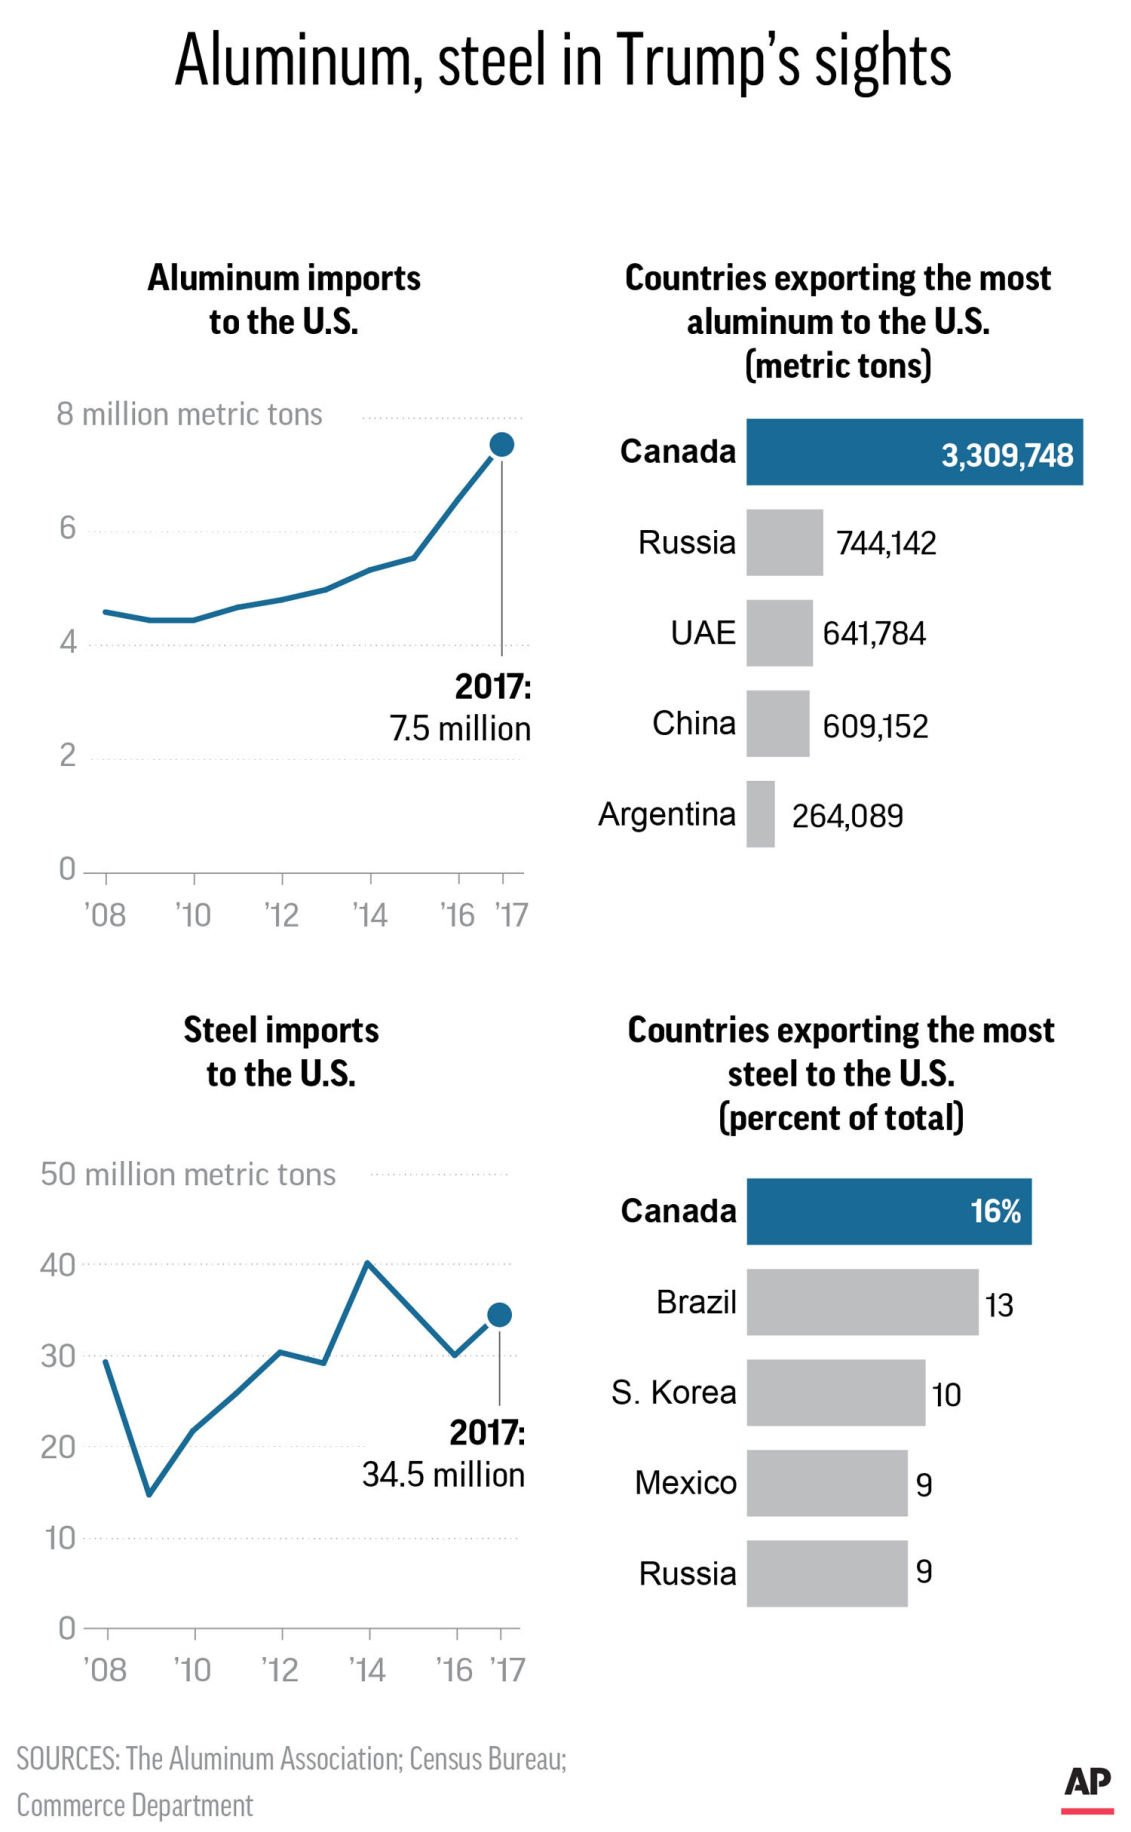 STEEL AND ALUMINUM IMPORTS